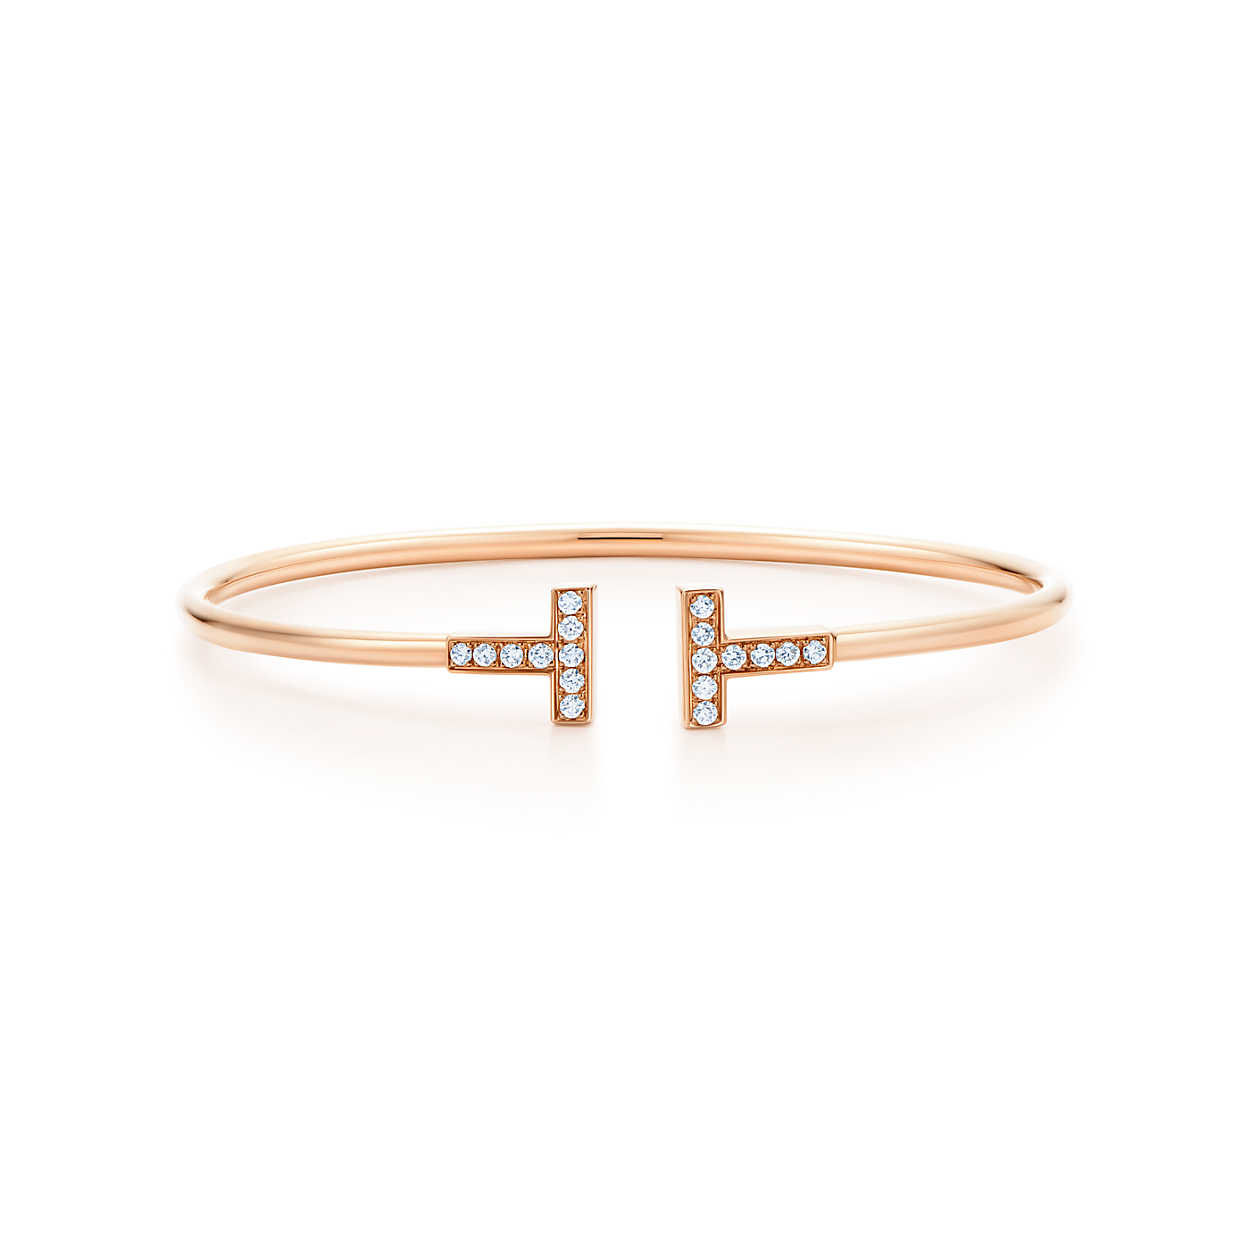 Inspired Tiffany T Wire Bracelet in 18kt Rose Gold with Diamonds